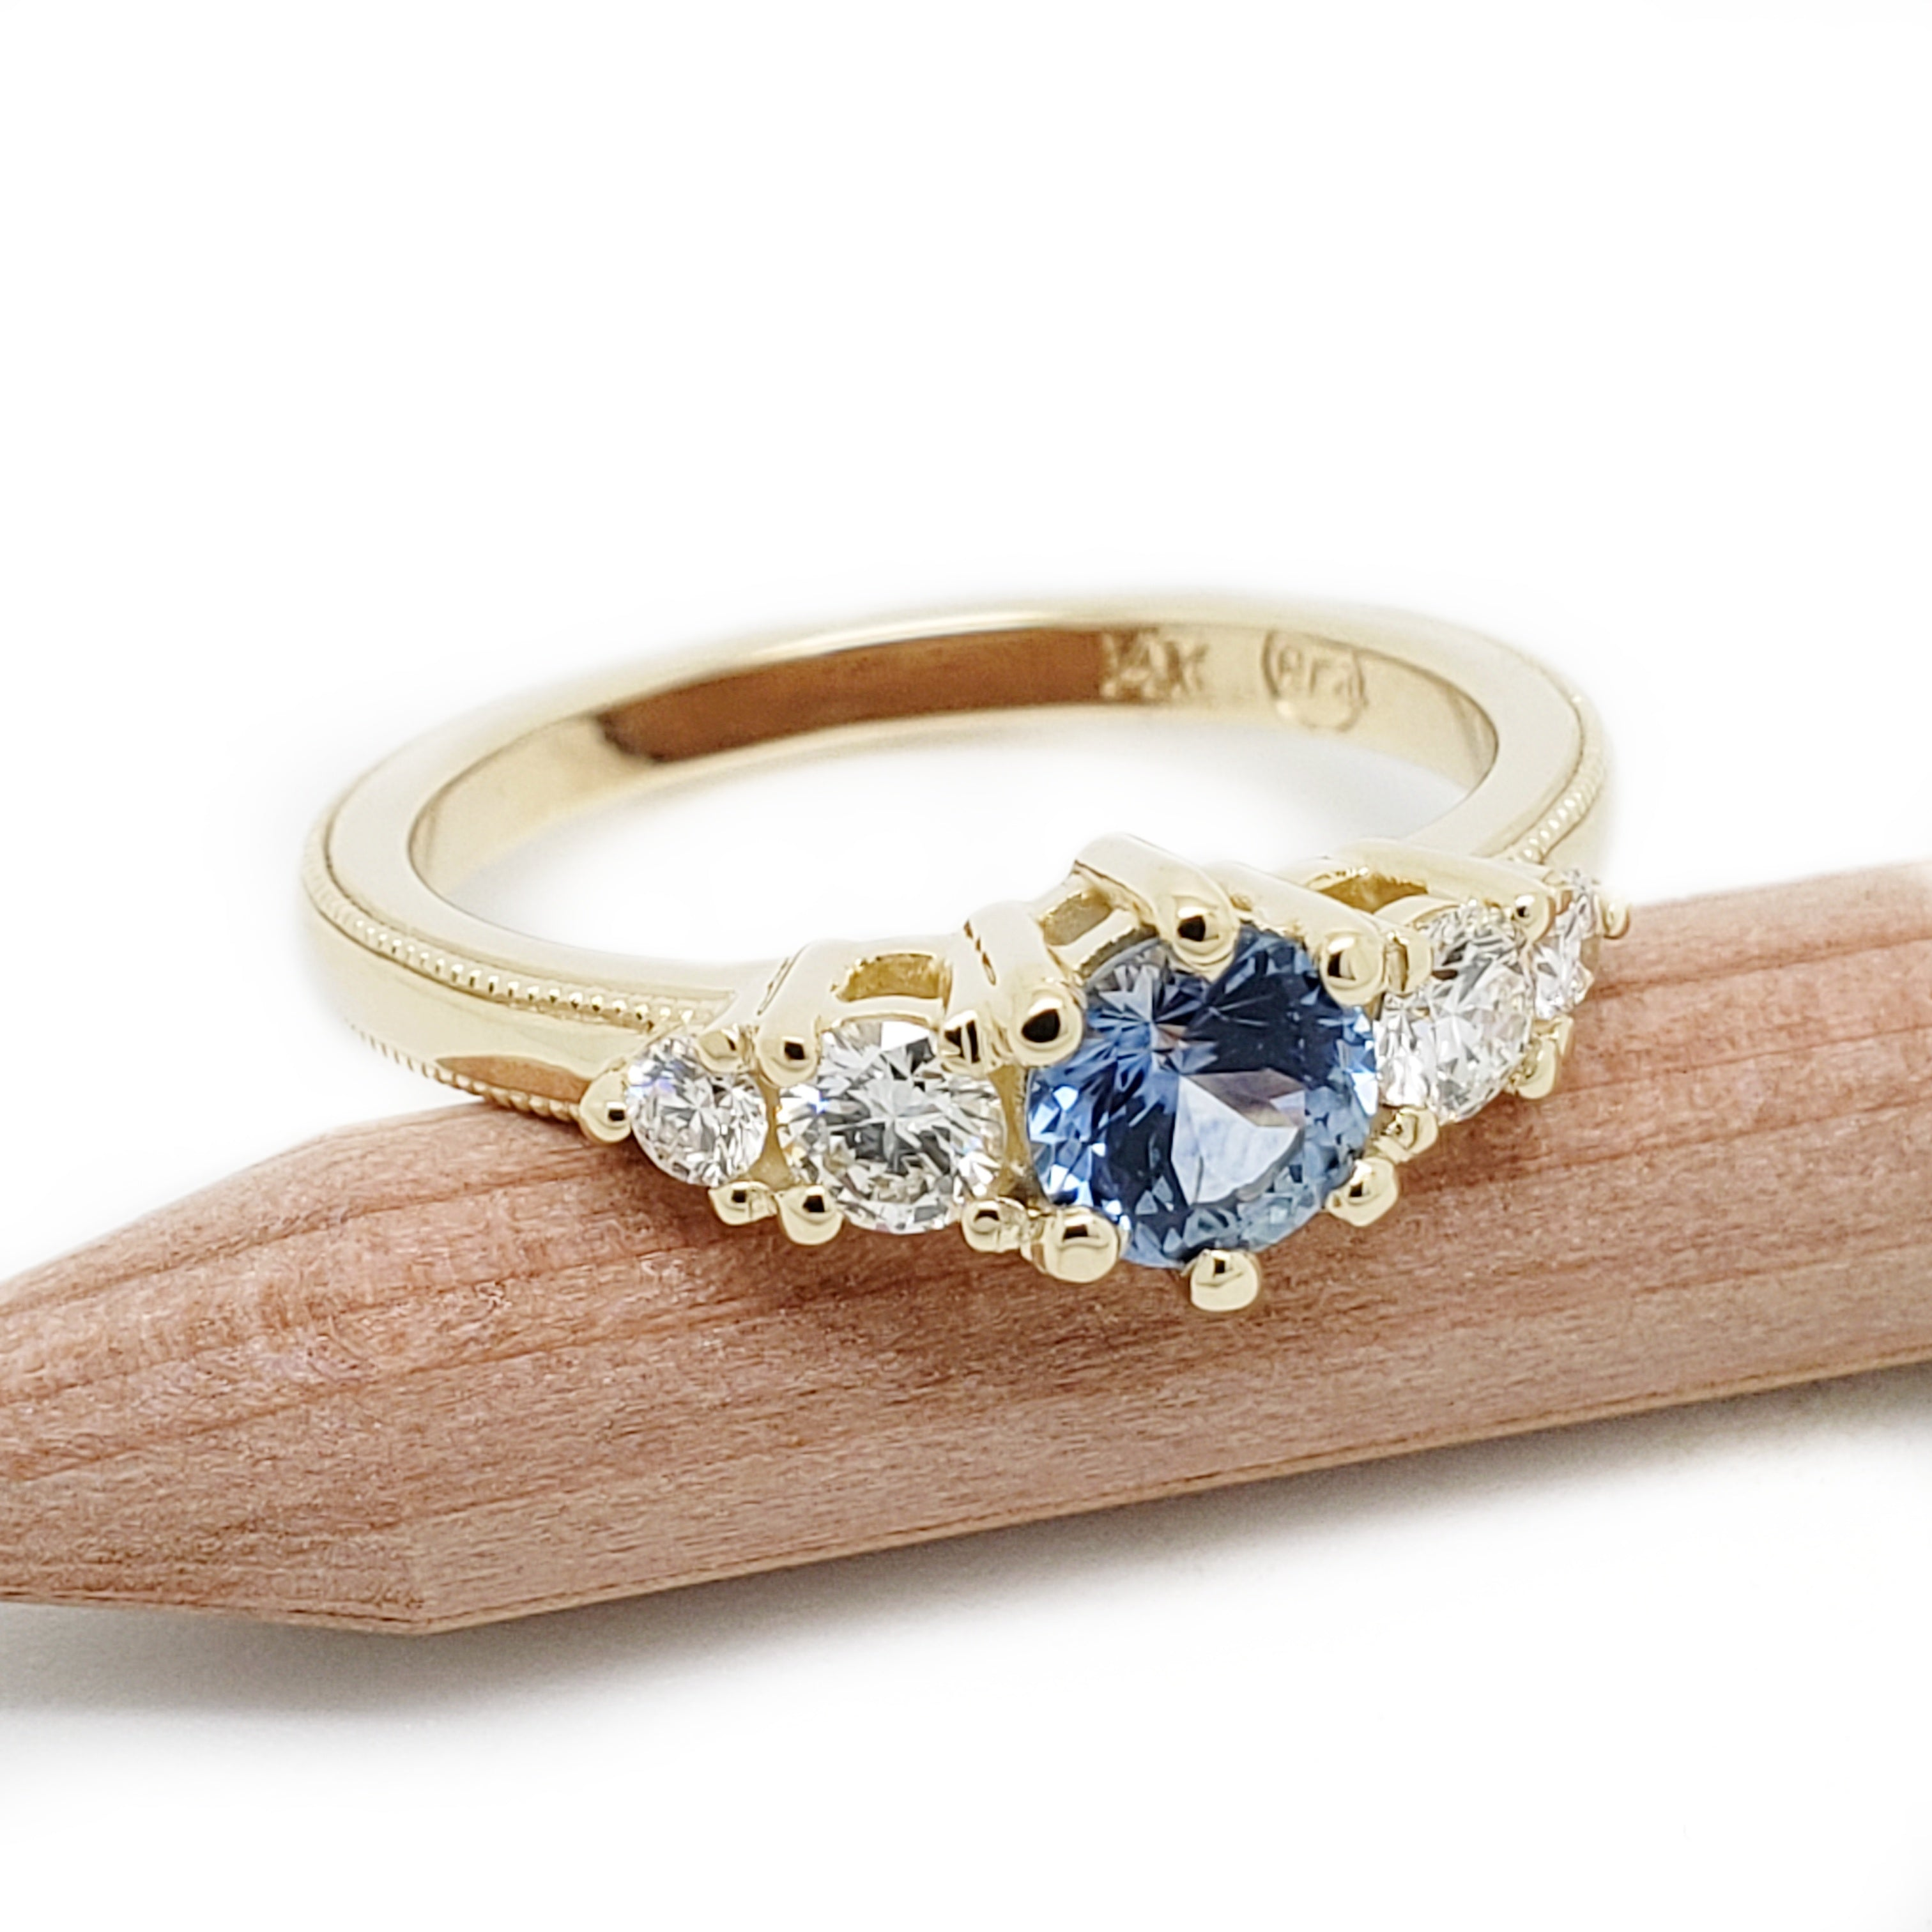 14kt yellow gold Montana sapphire Canadian diamonds five stone engagement ring millgrain era design vancouver